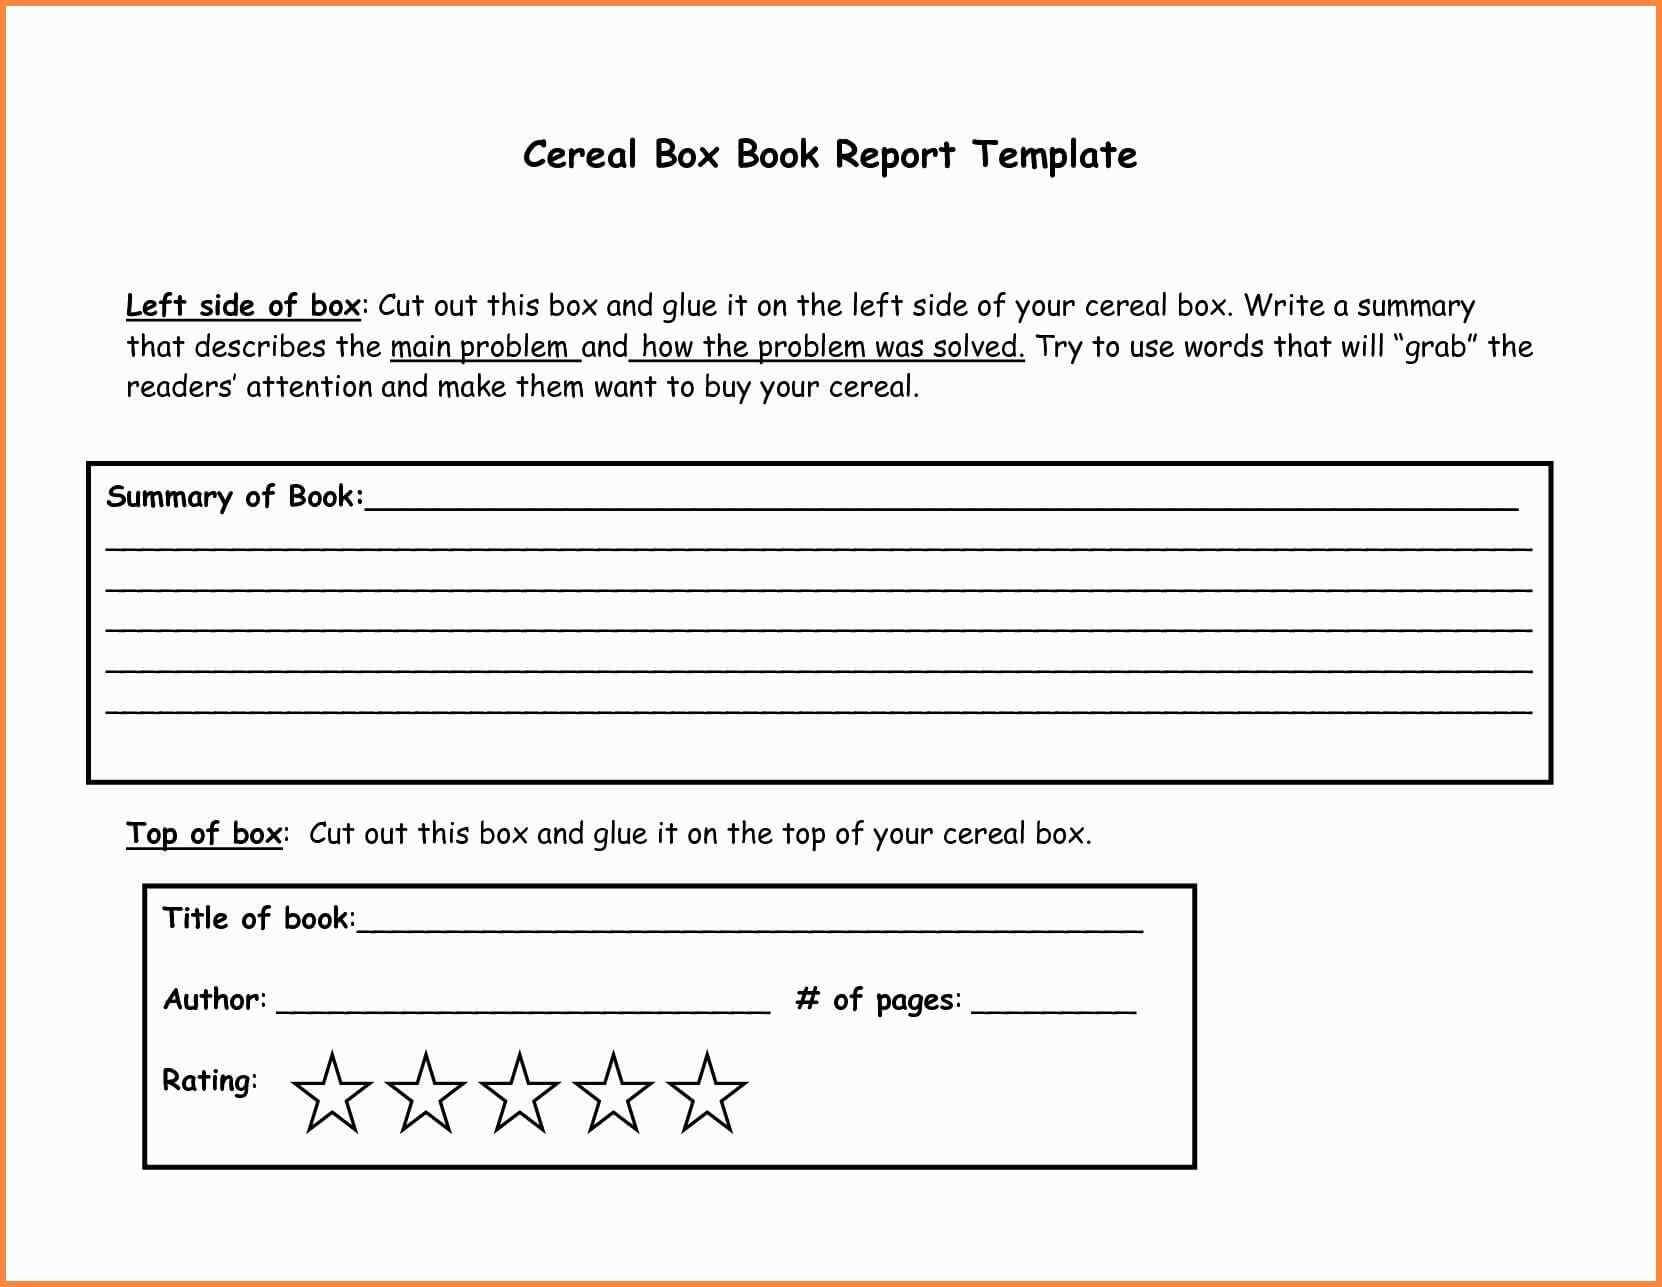 Cereal Box Book Report Samples And 4Th Grade Book Report Within Cereal Box Book Report Template